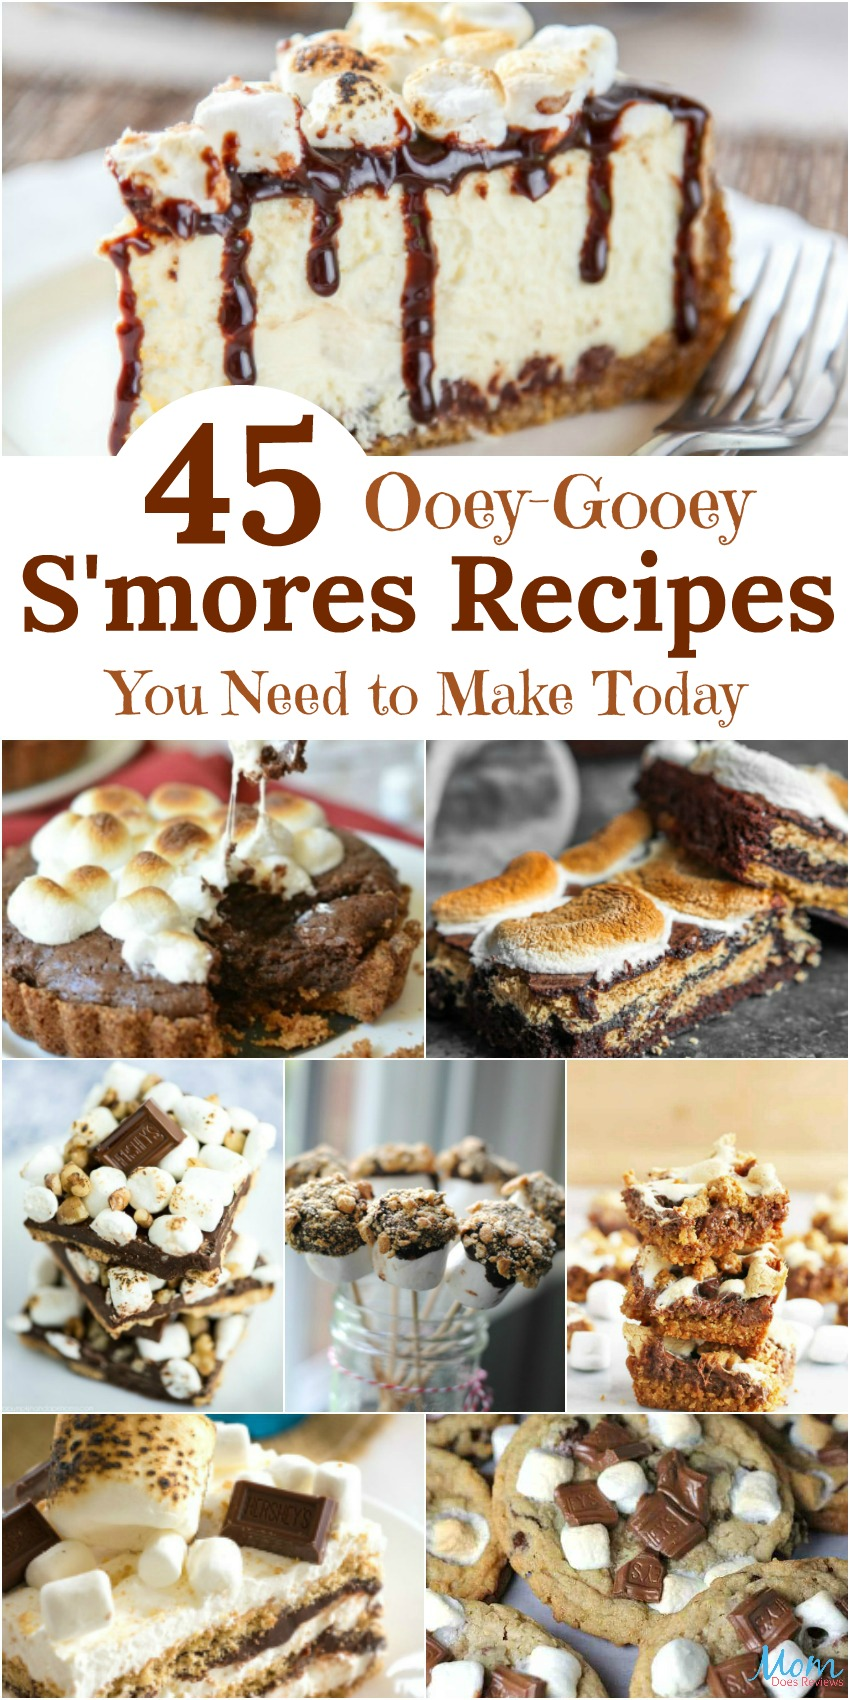 45 Ooey-Gooey S'mores Recipes You Need to Make Today {Part 2}